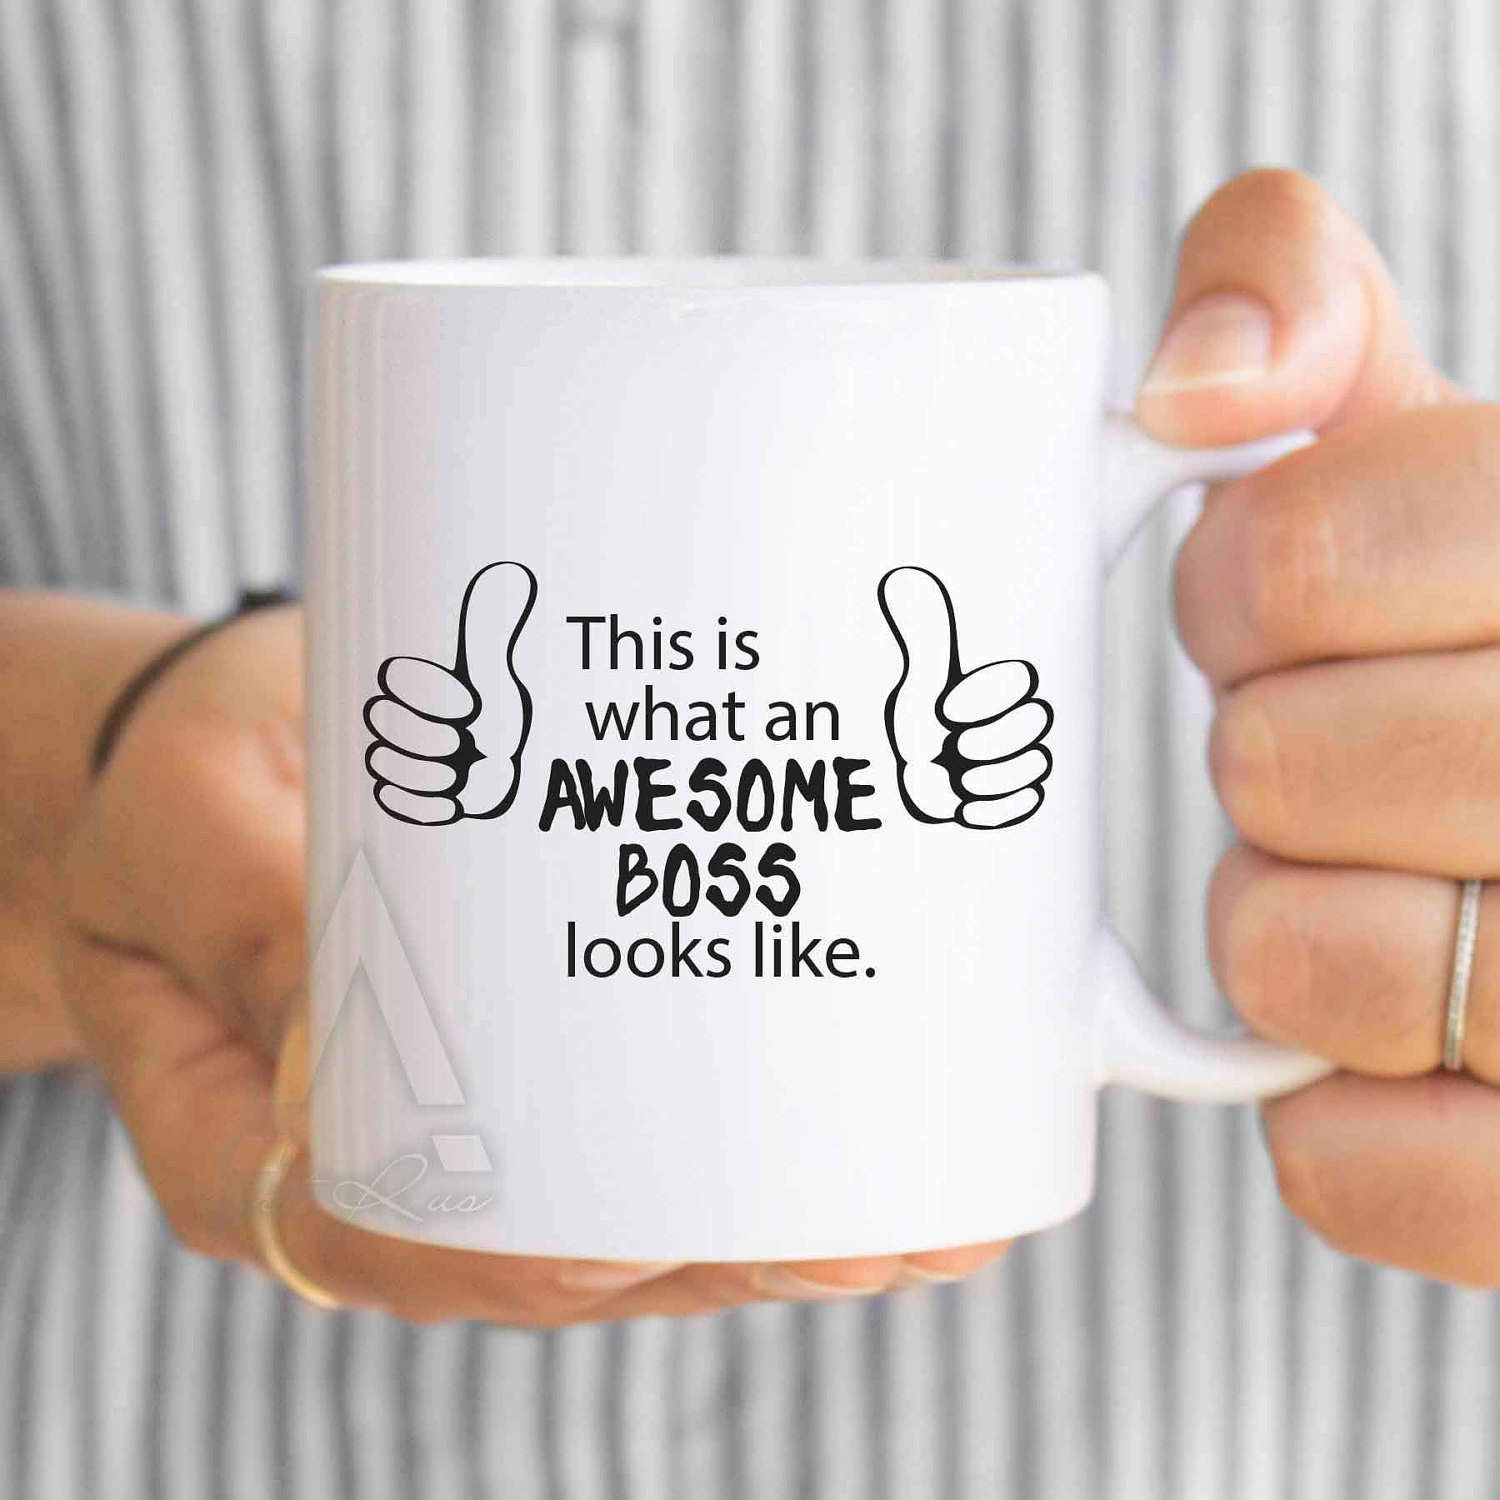 Best coffee mugs etsy - Boss Gifts Christmas Gifts This Is What An Awesome Boss Looks Like Funny Coffee Mugs Boss Appreciation Male Boss Gift Idea By Artruss On Etsy